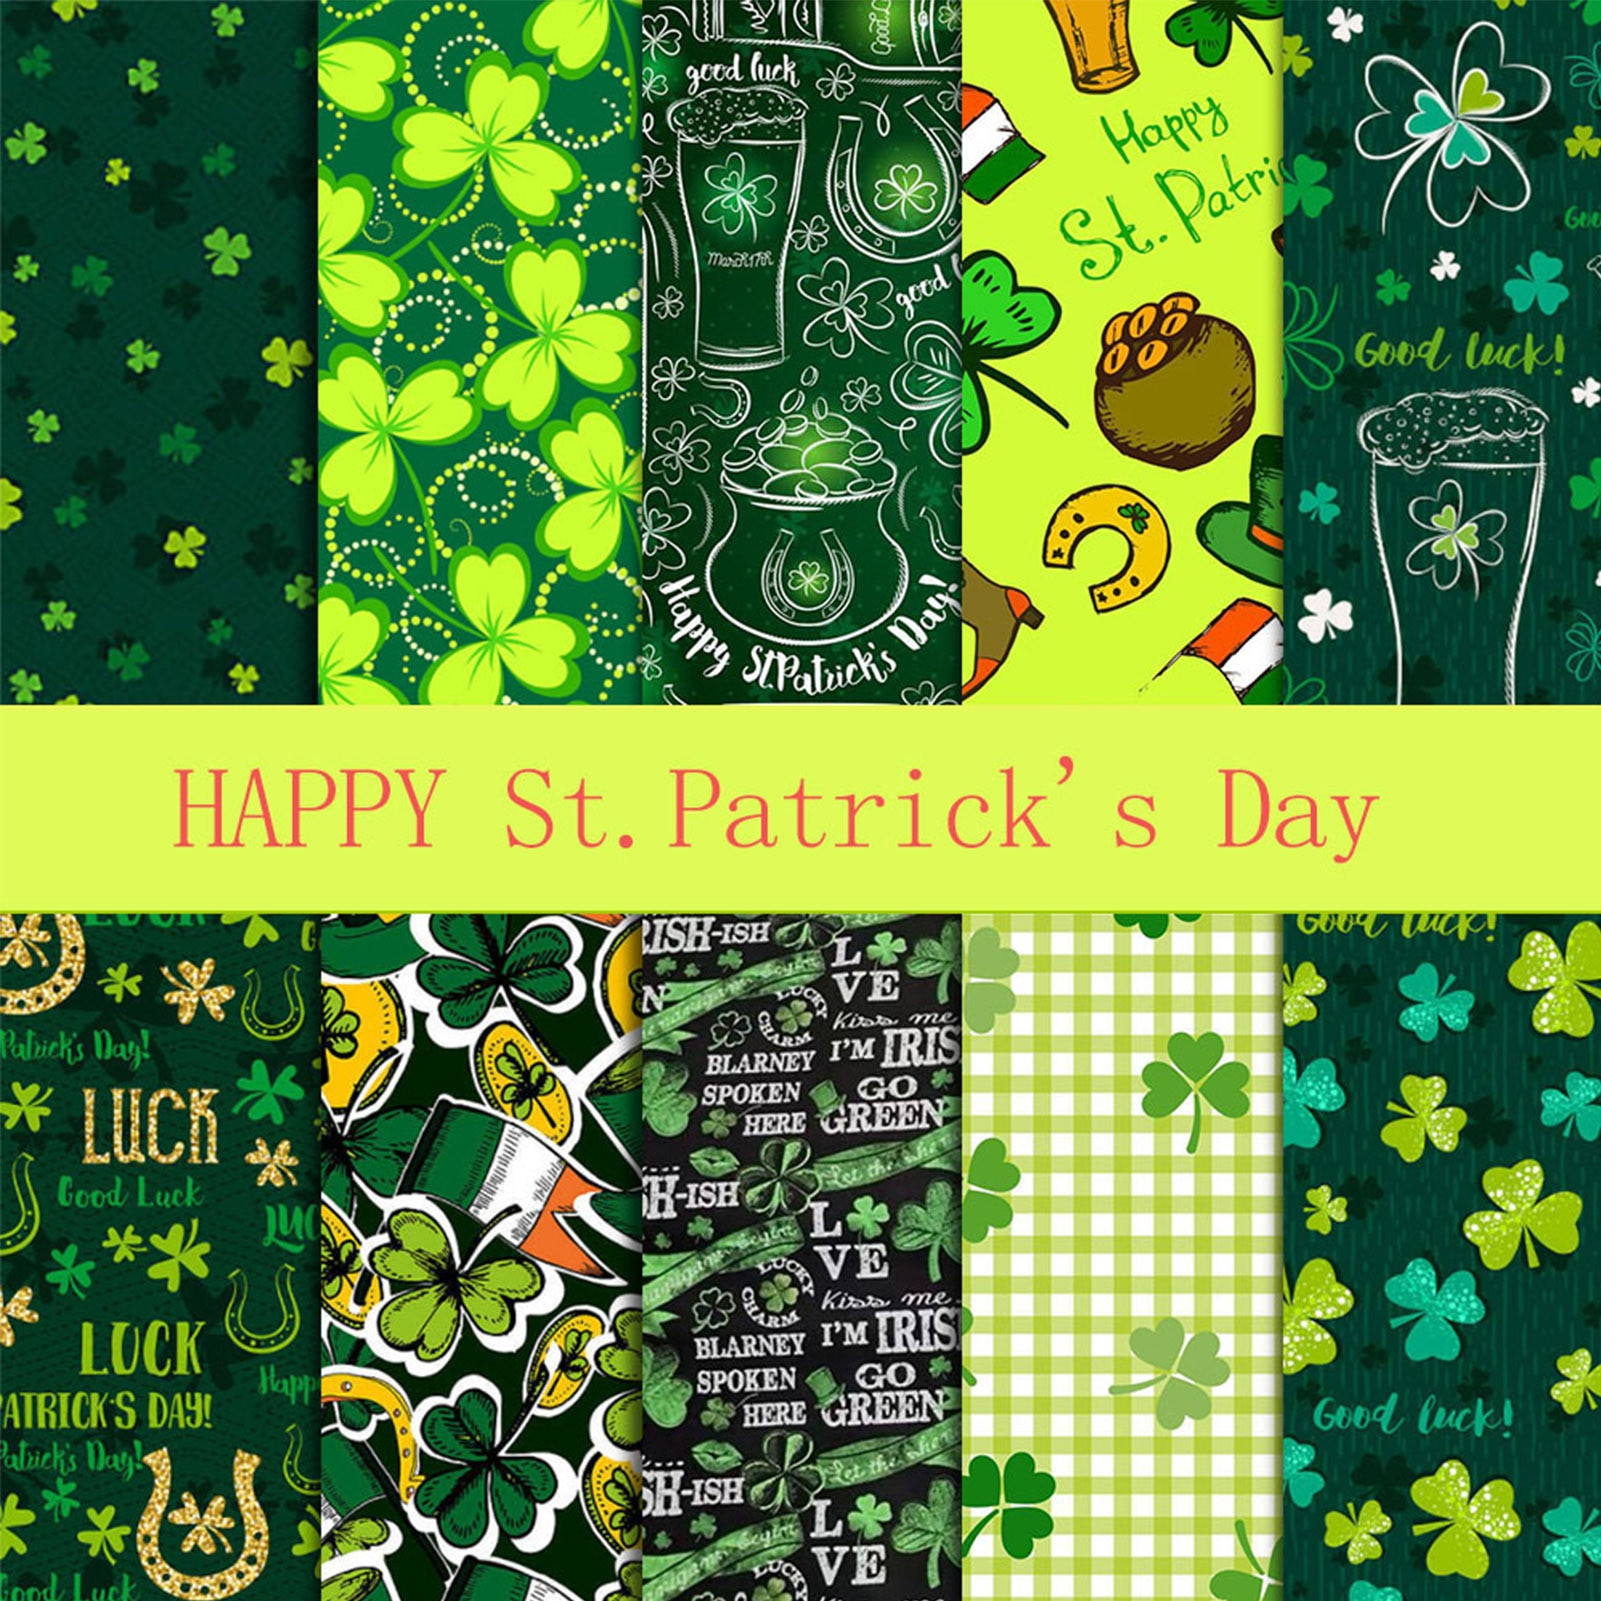 10PCS Printed Cotton Quilting Fabric St. Patricks Day Decorationbright colors soft and breathable best for family